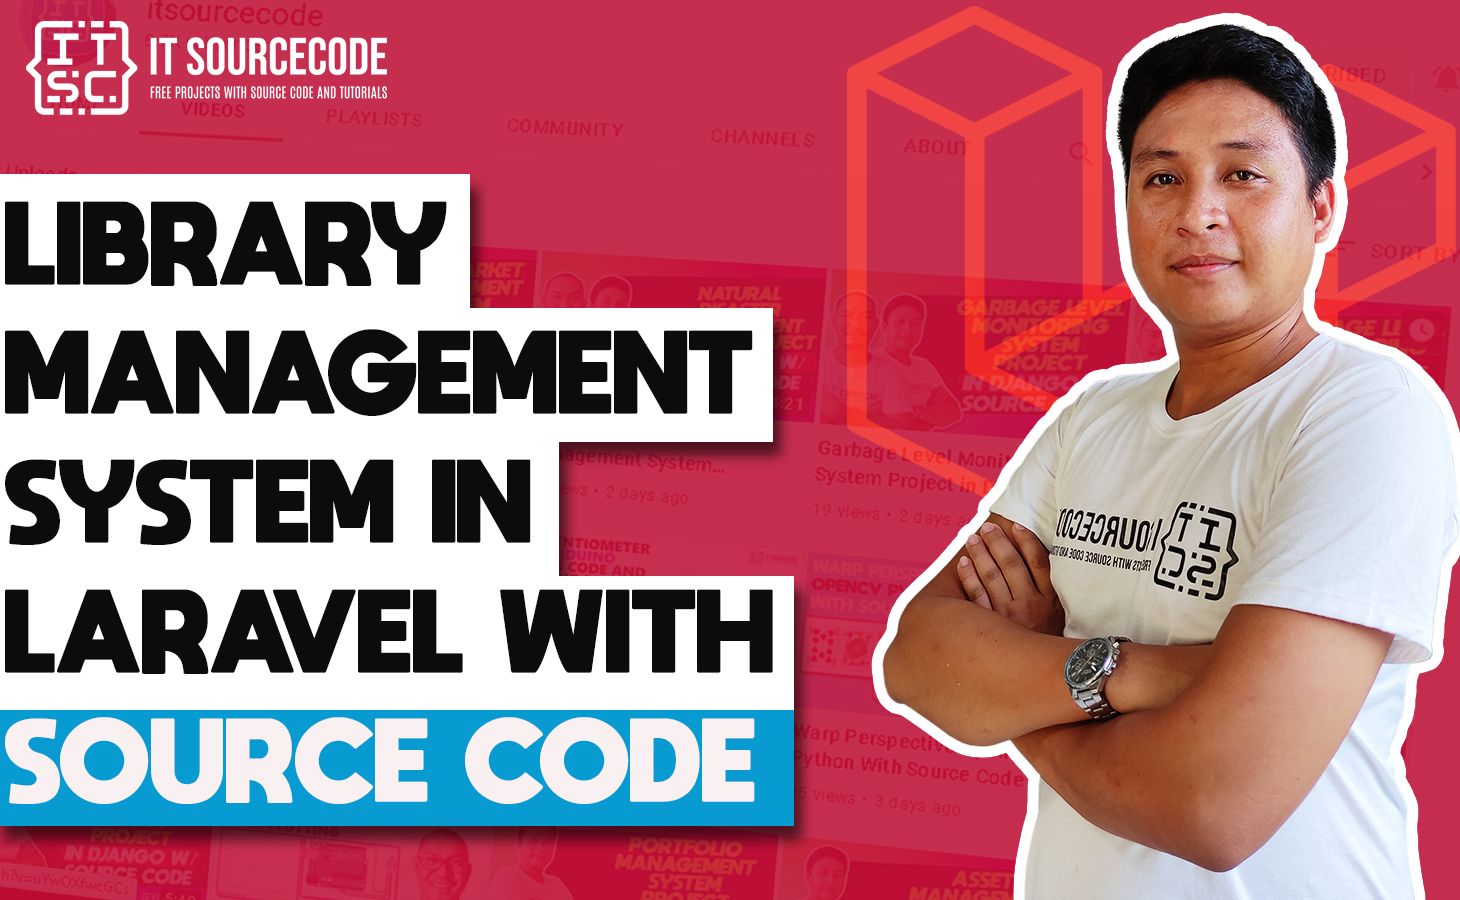 Library Management System Project in Laravel with Source Code